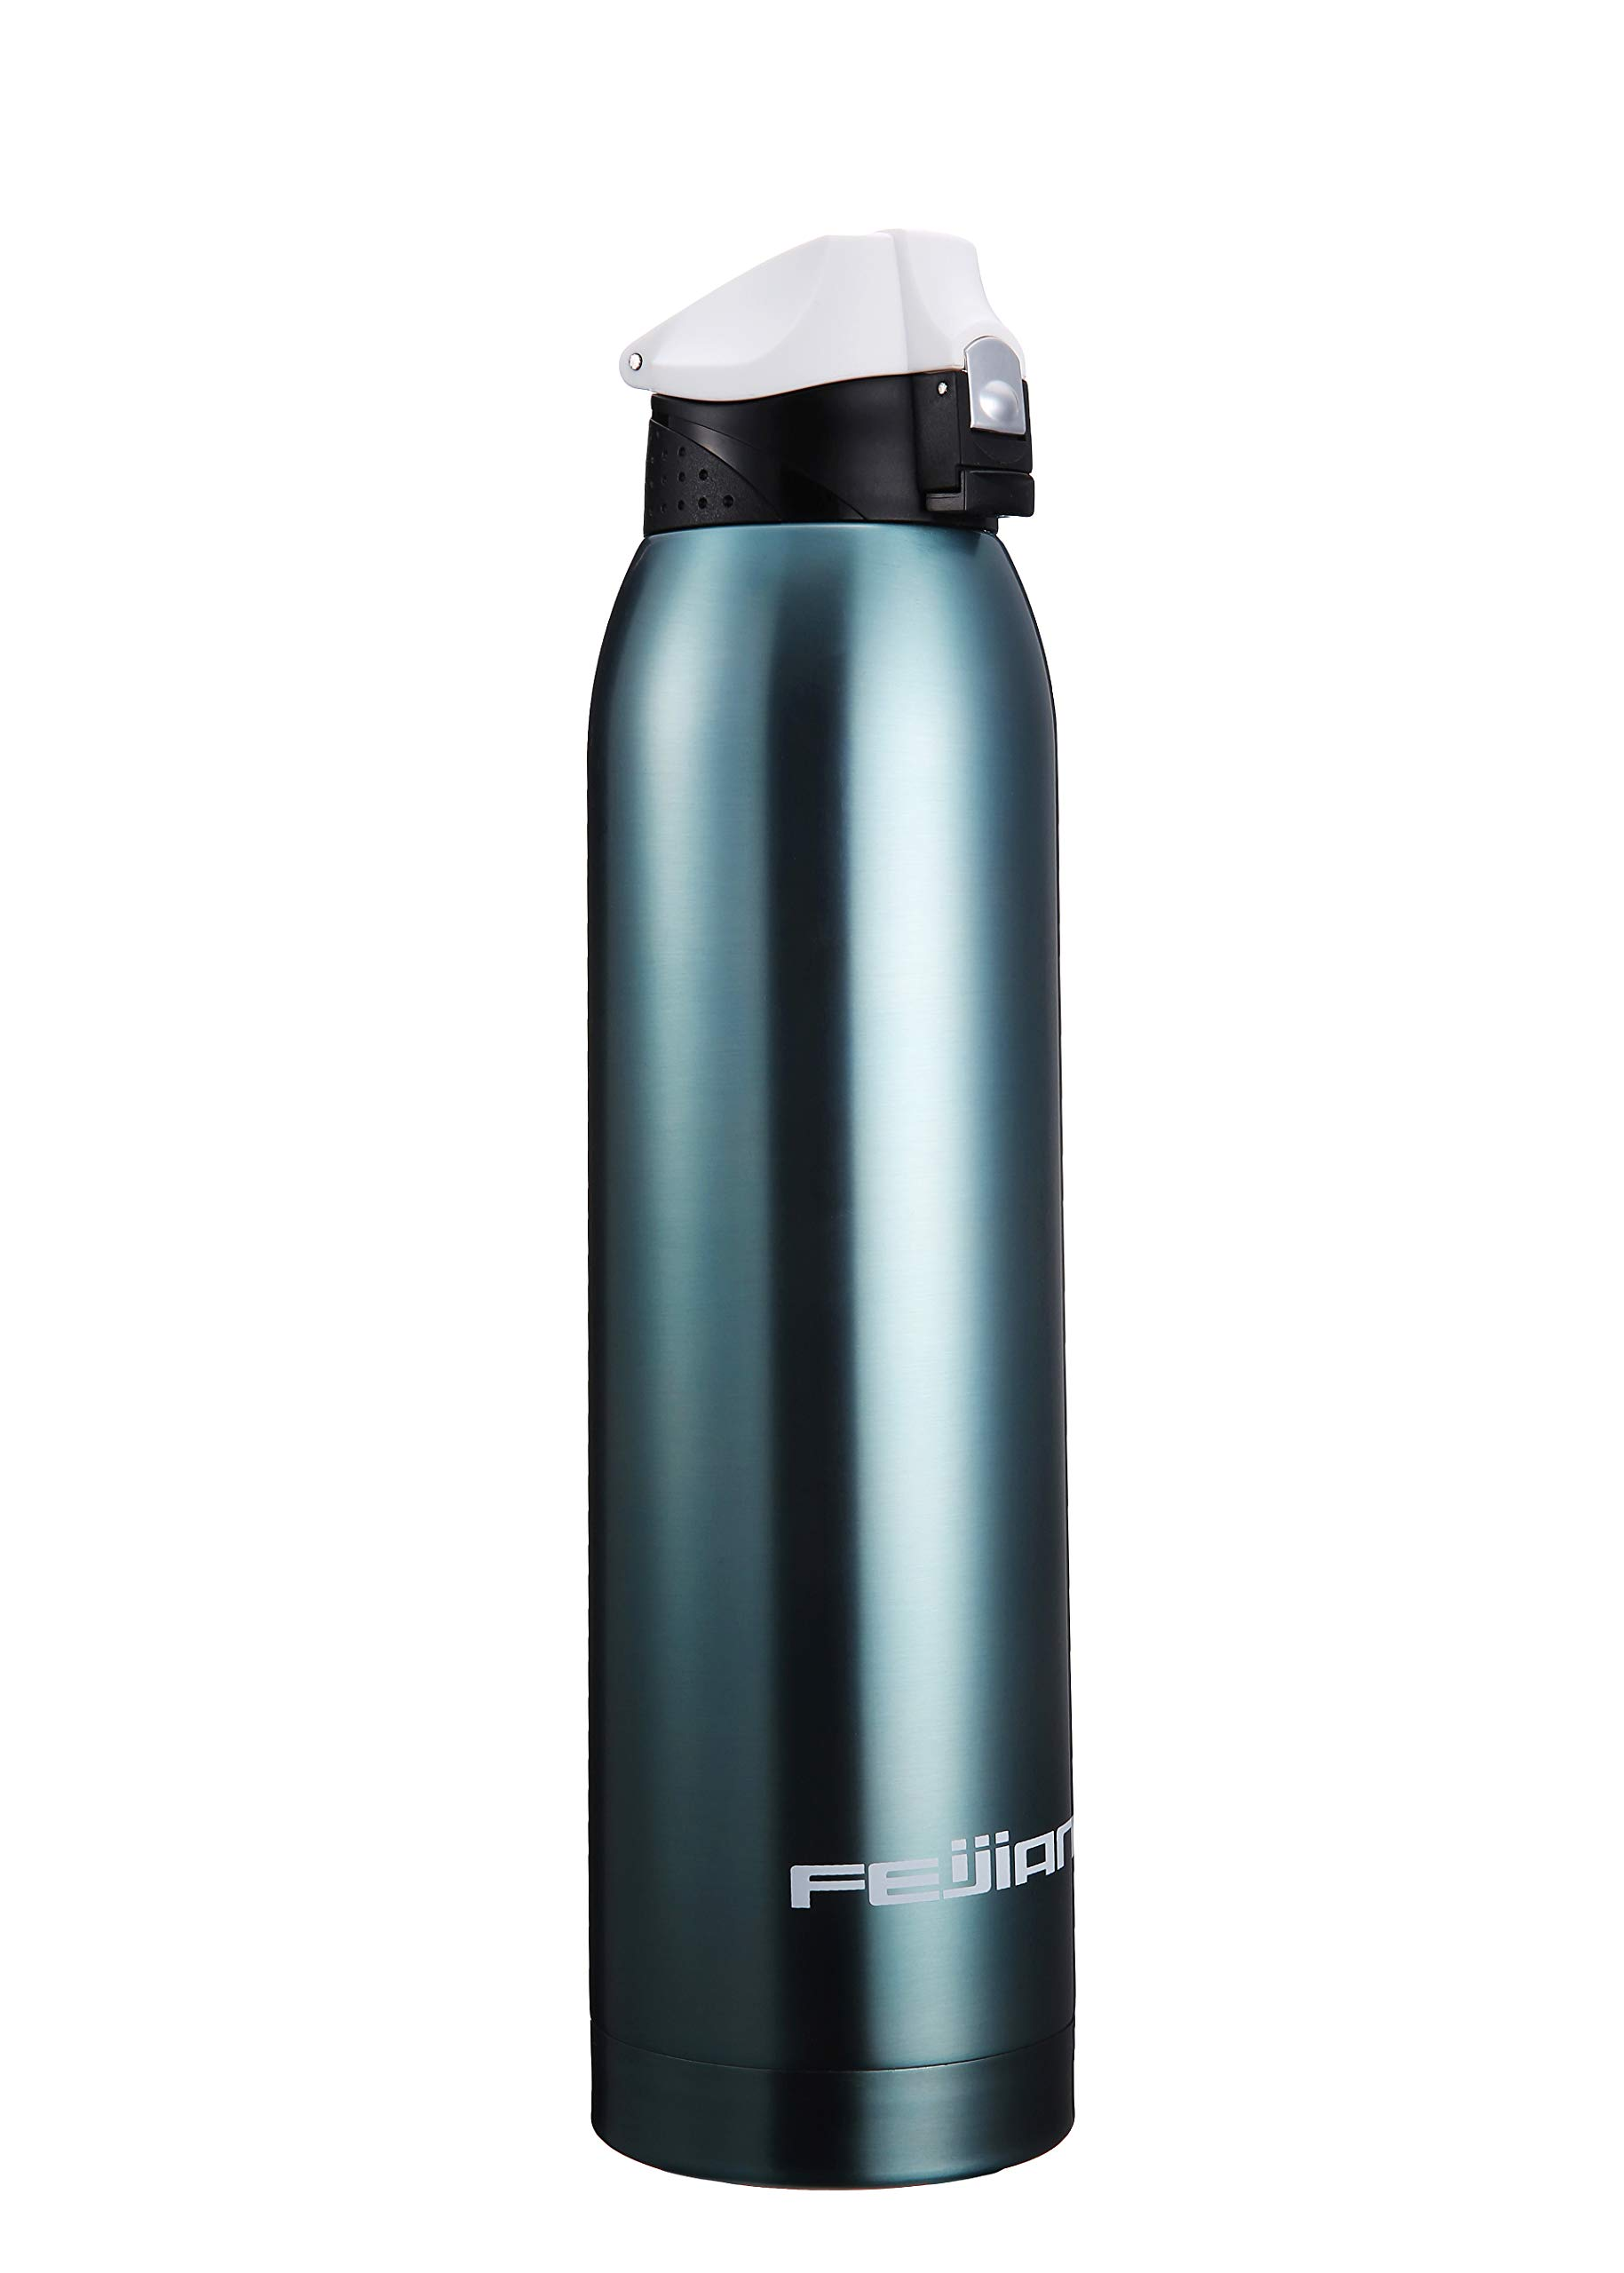 Stainless Steel Insulated Water Bottle - 52 OZ FEIJIAN (2018 New Arrival) Double Walled Vacuum Insulated 1.5 Liter Water Bottle Blue With Potarble Bag